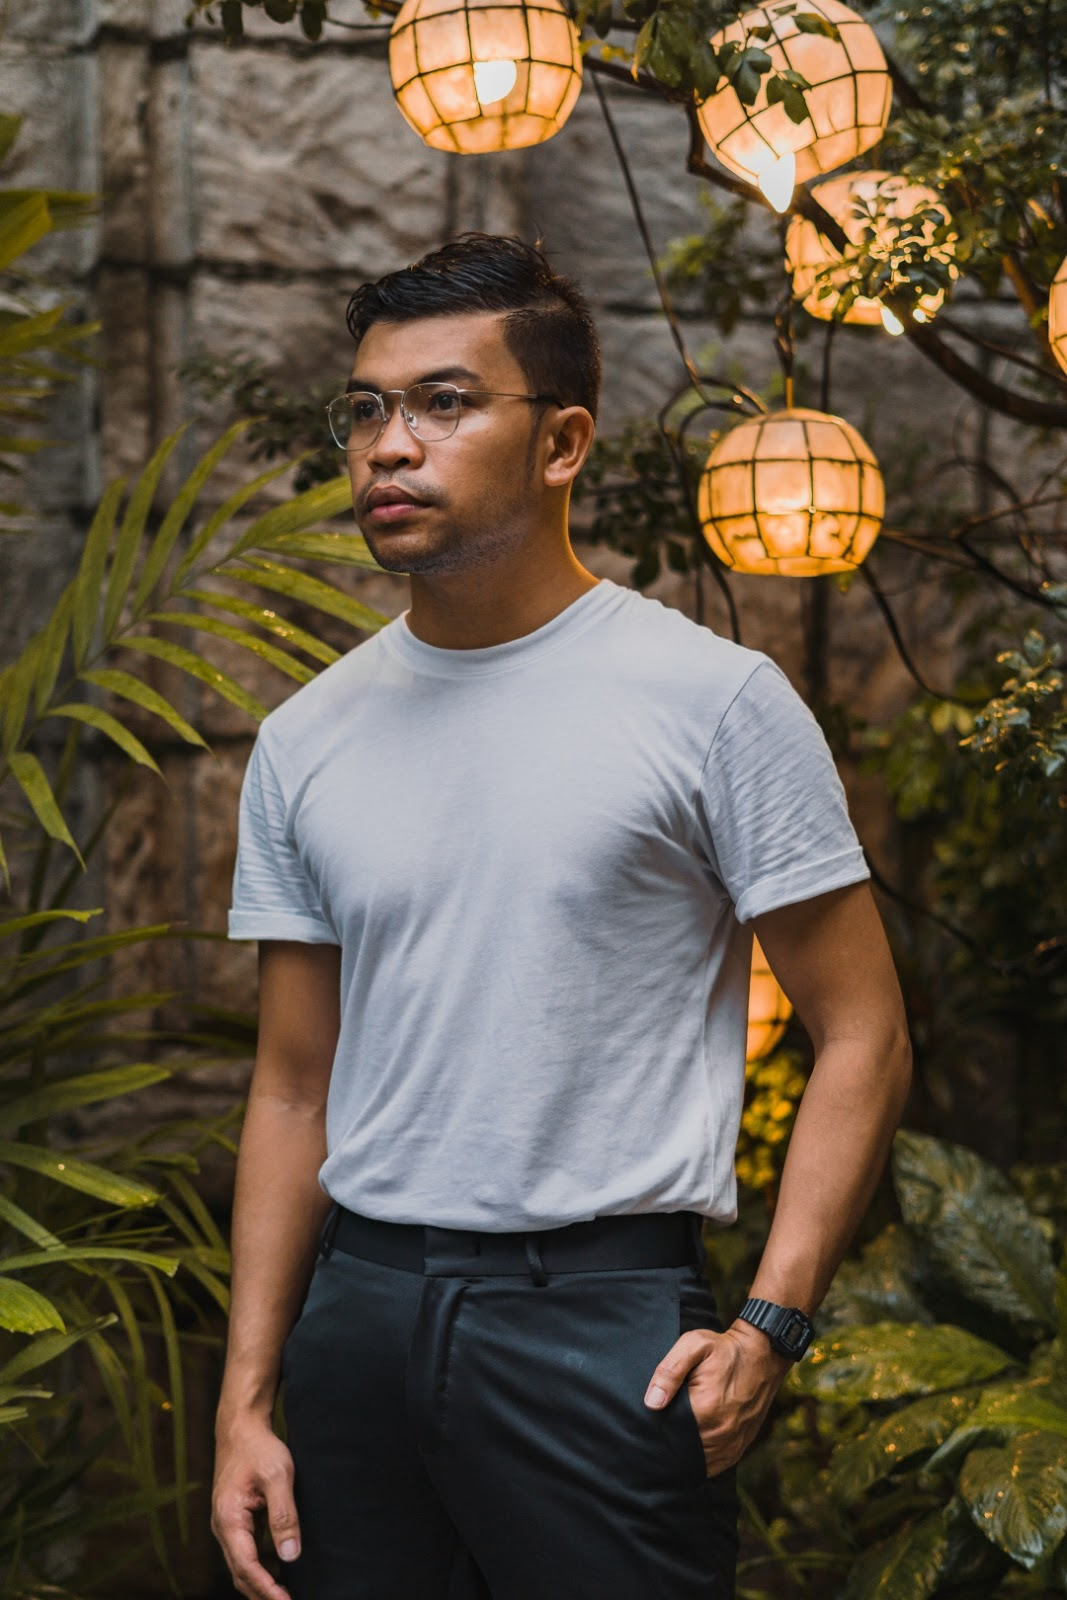 unrequited-love-cebu-men-fashion-blogger-almostablogger.jpg